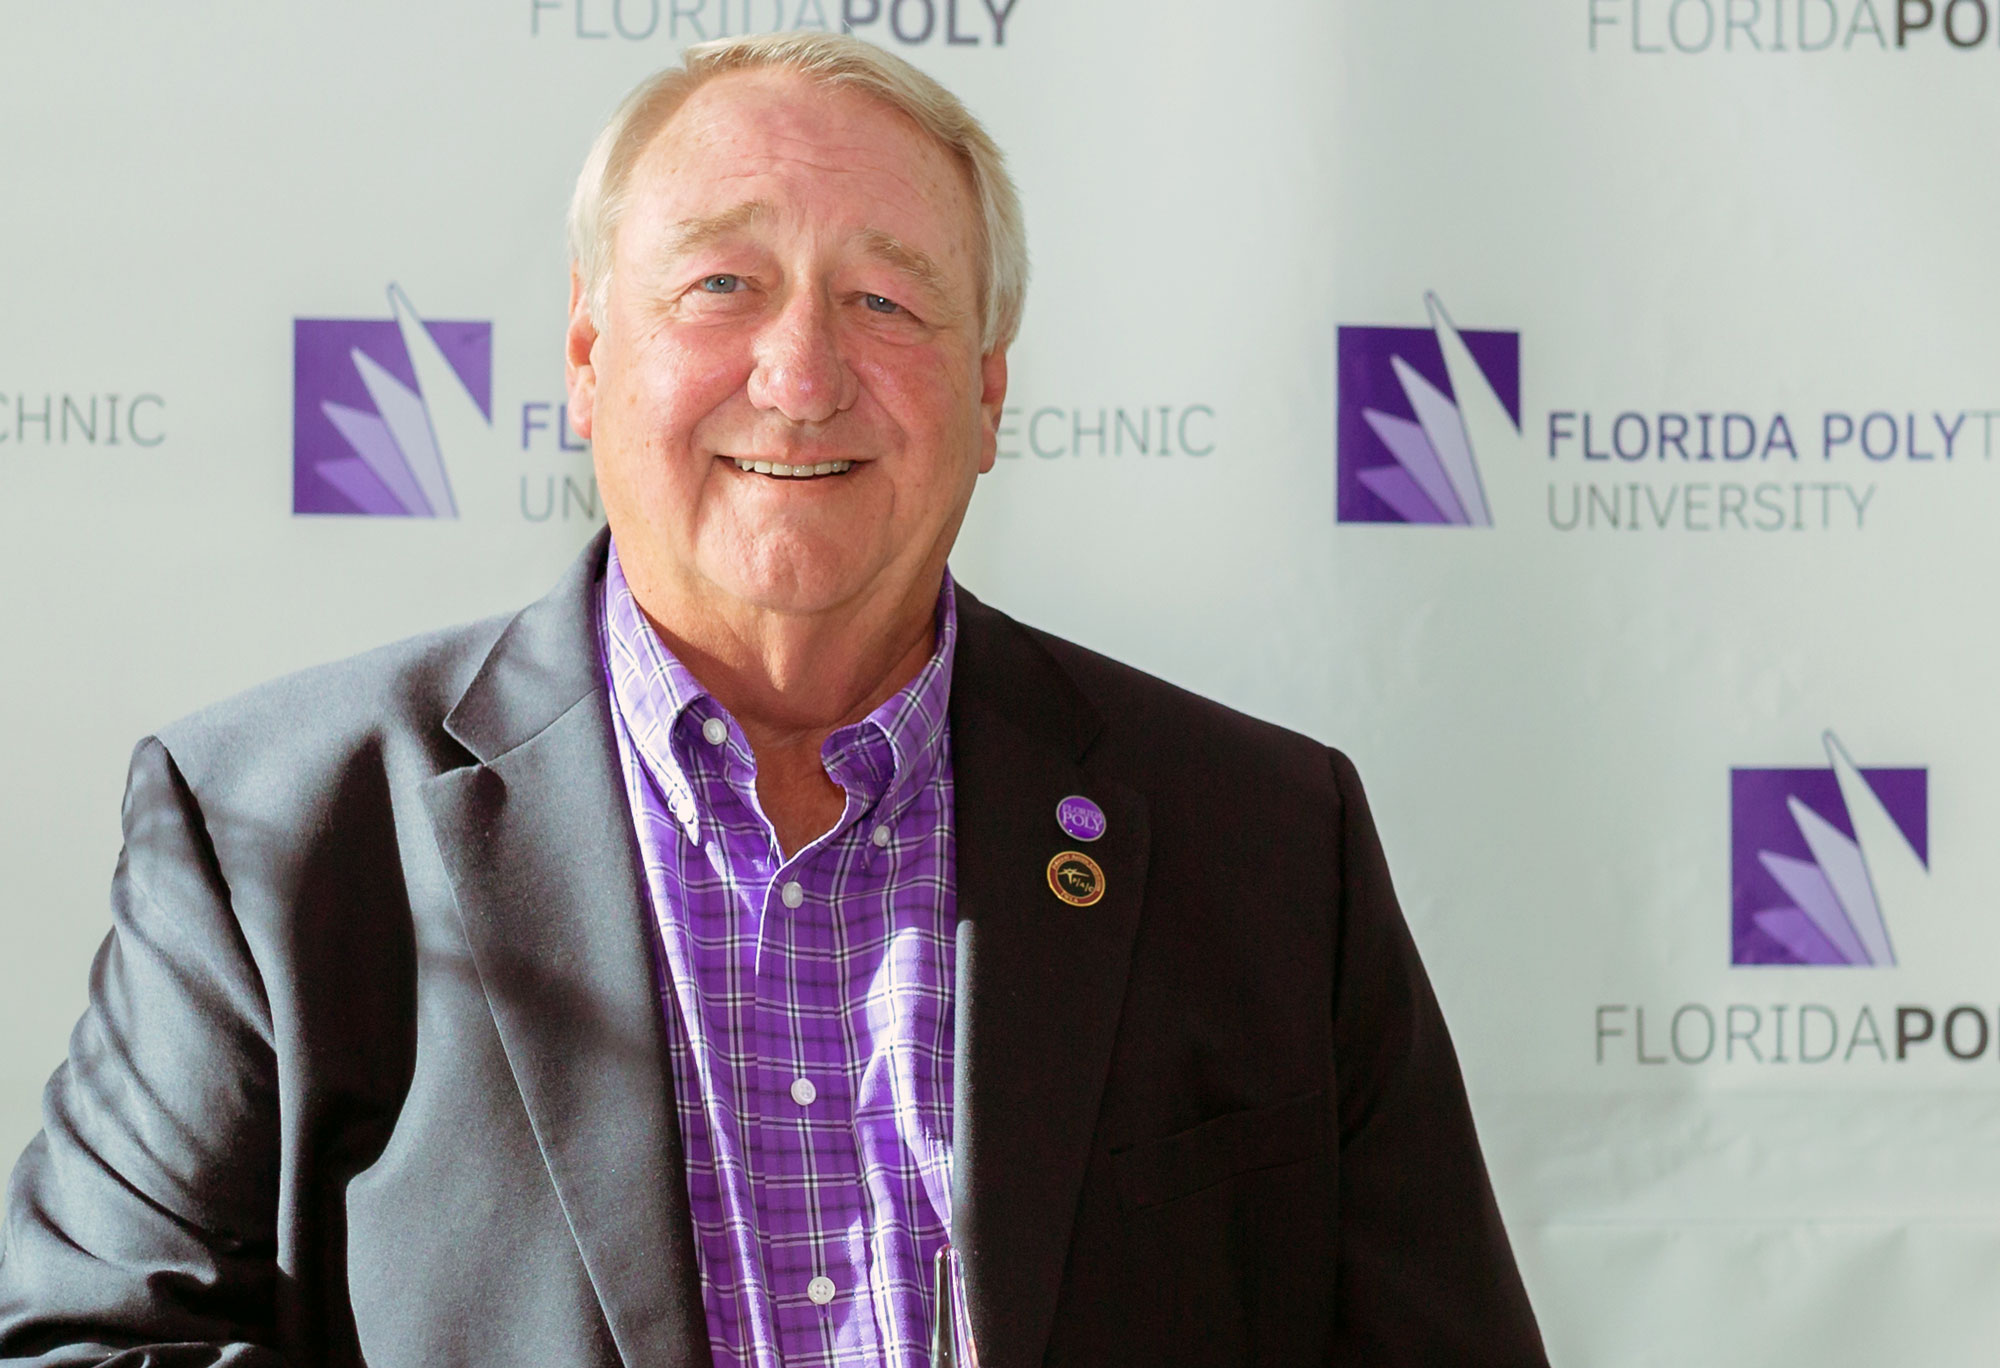 Former Saddle Creek CEO named Florida Poly Board of Trustees chair